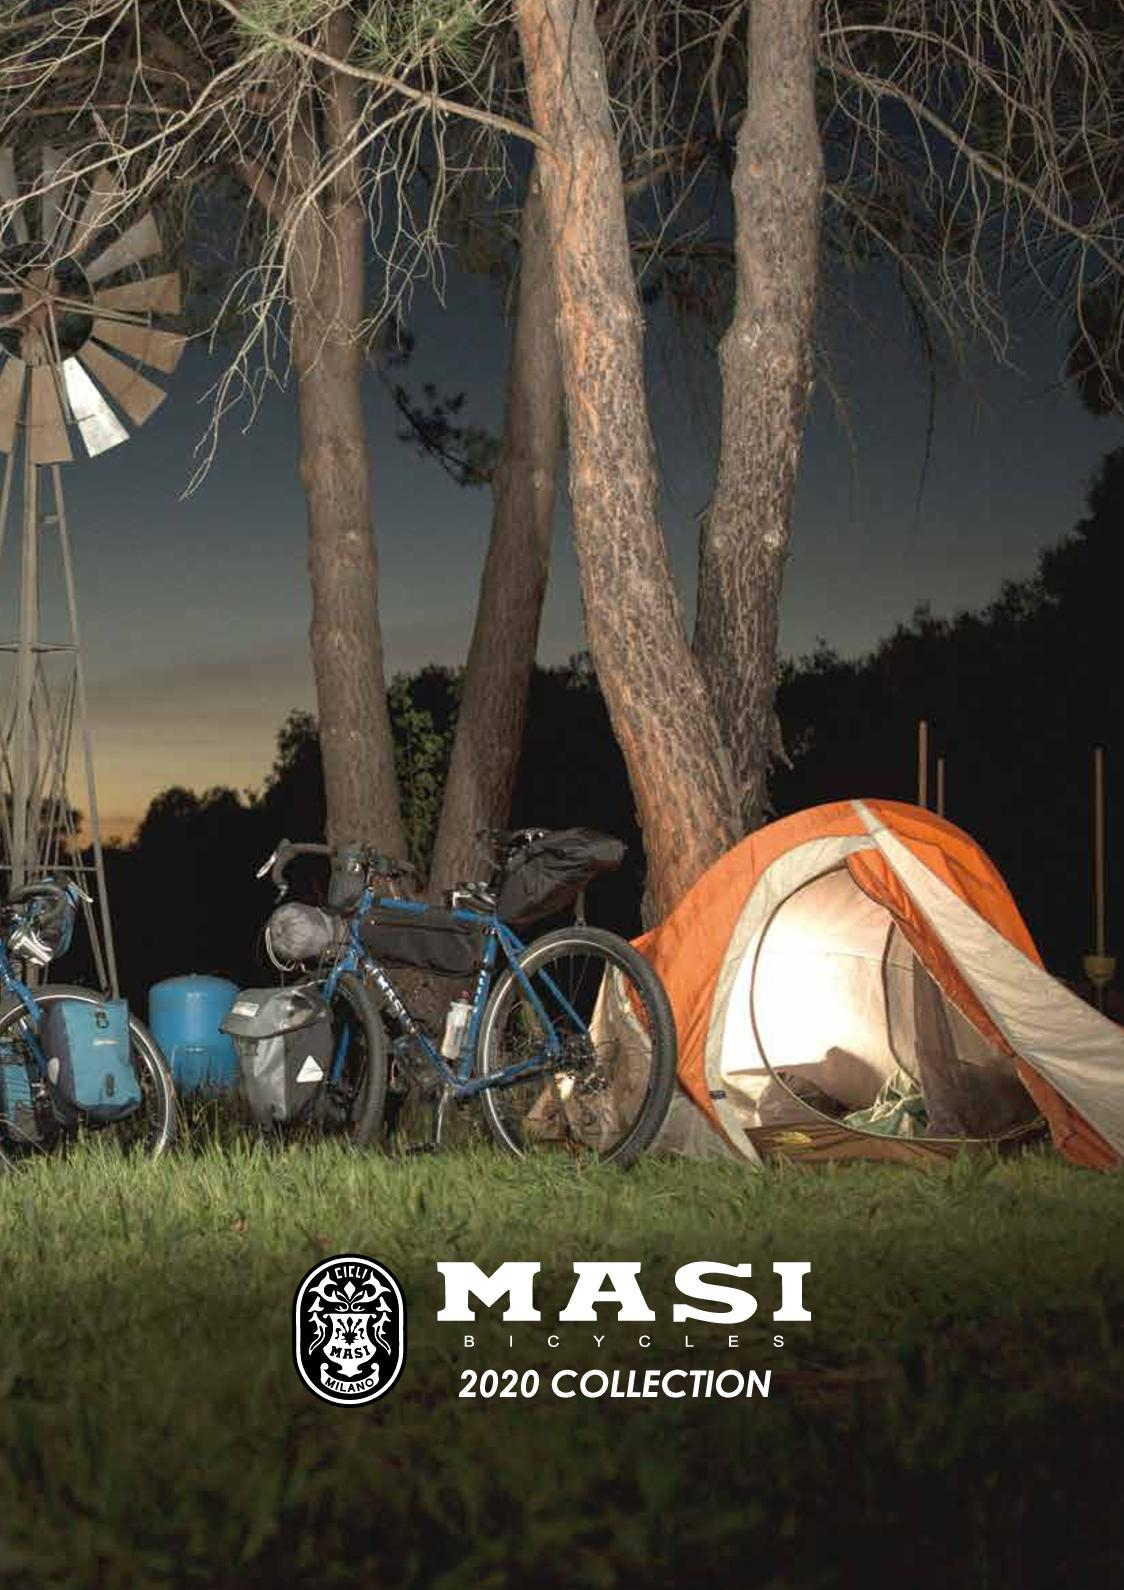 Masi 2020 Collection